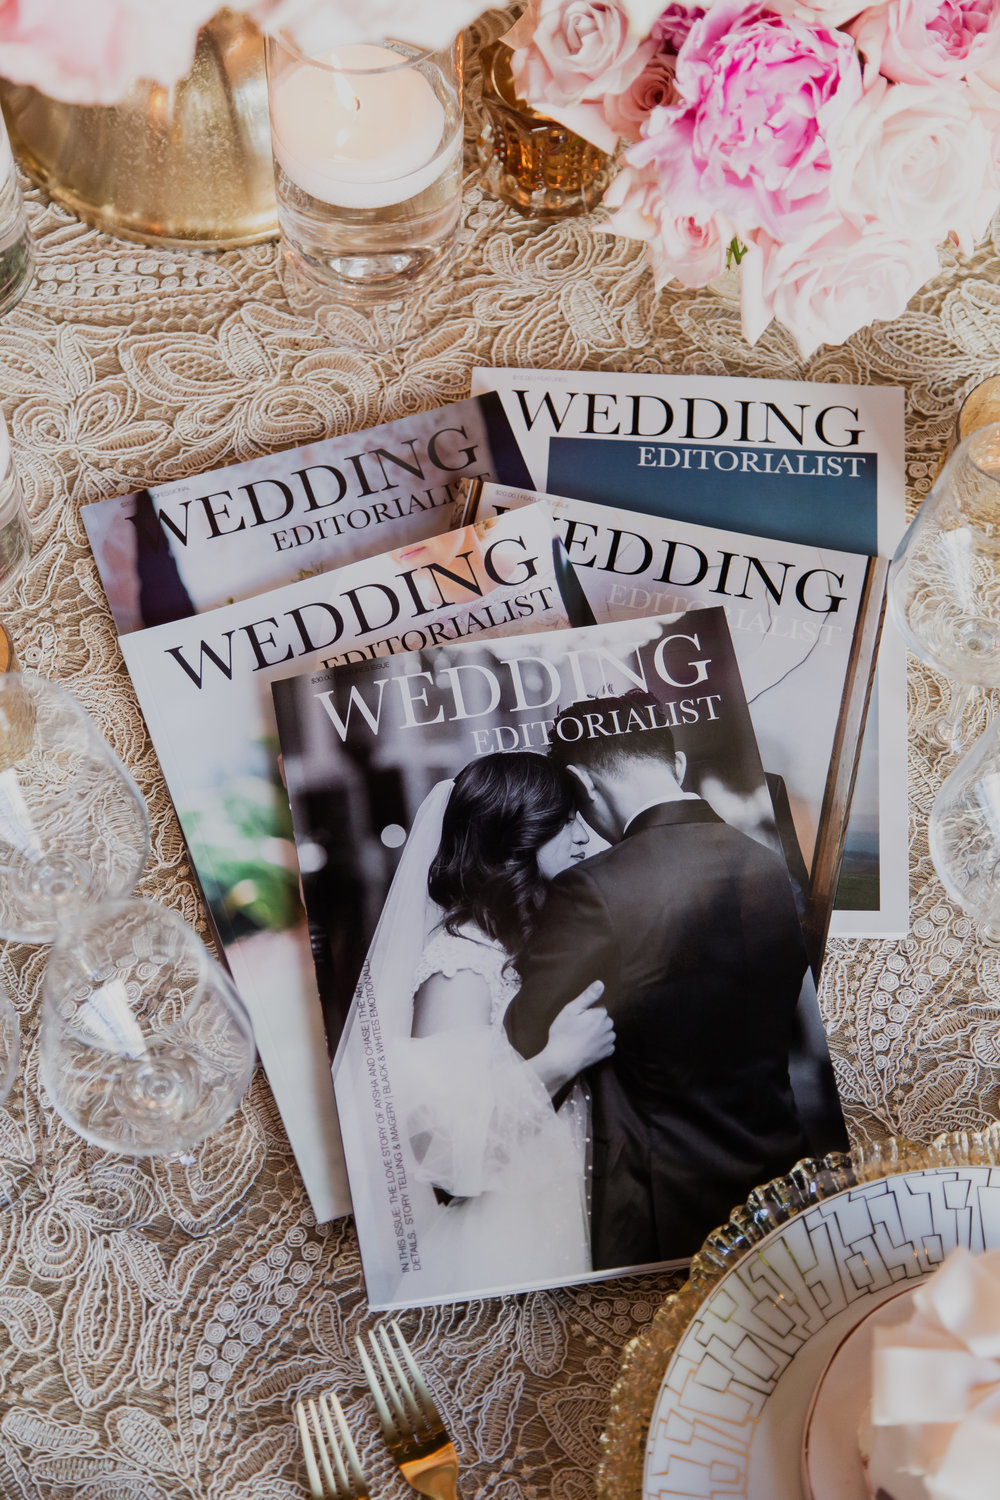 Copies of Wedding Editorialist. Customized wedding magazines made for couples in love.